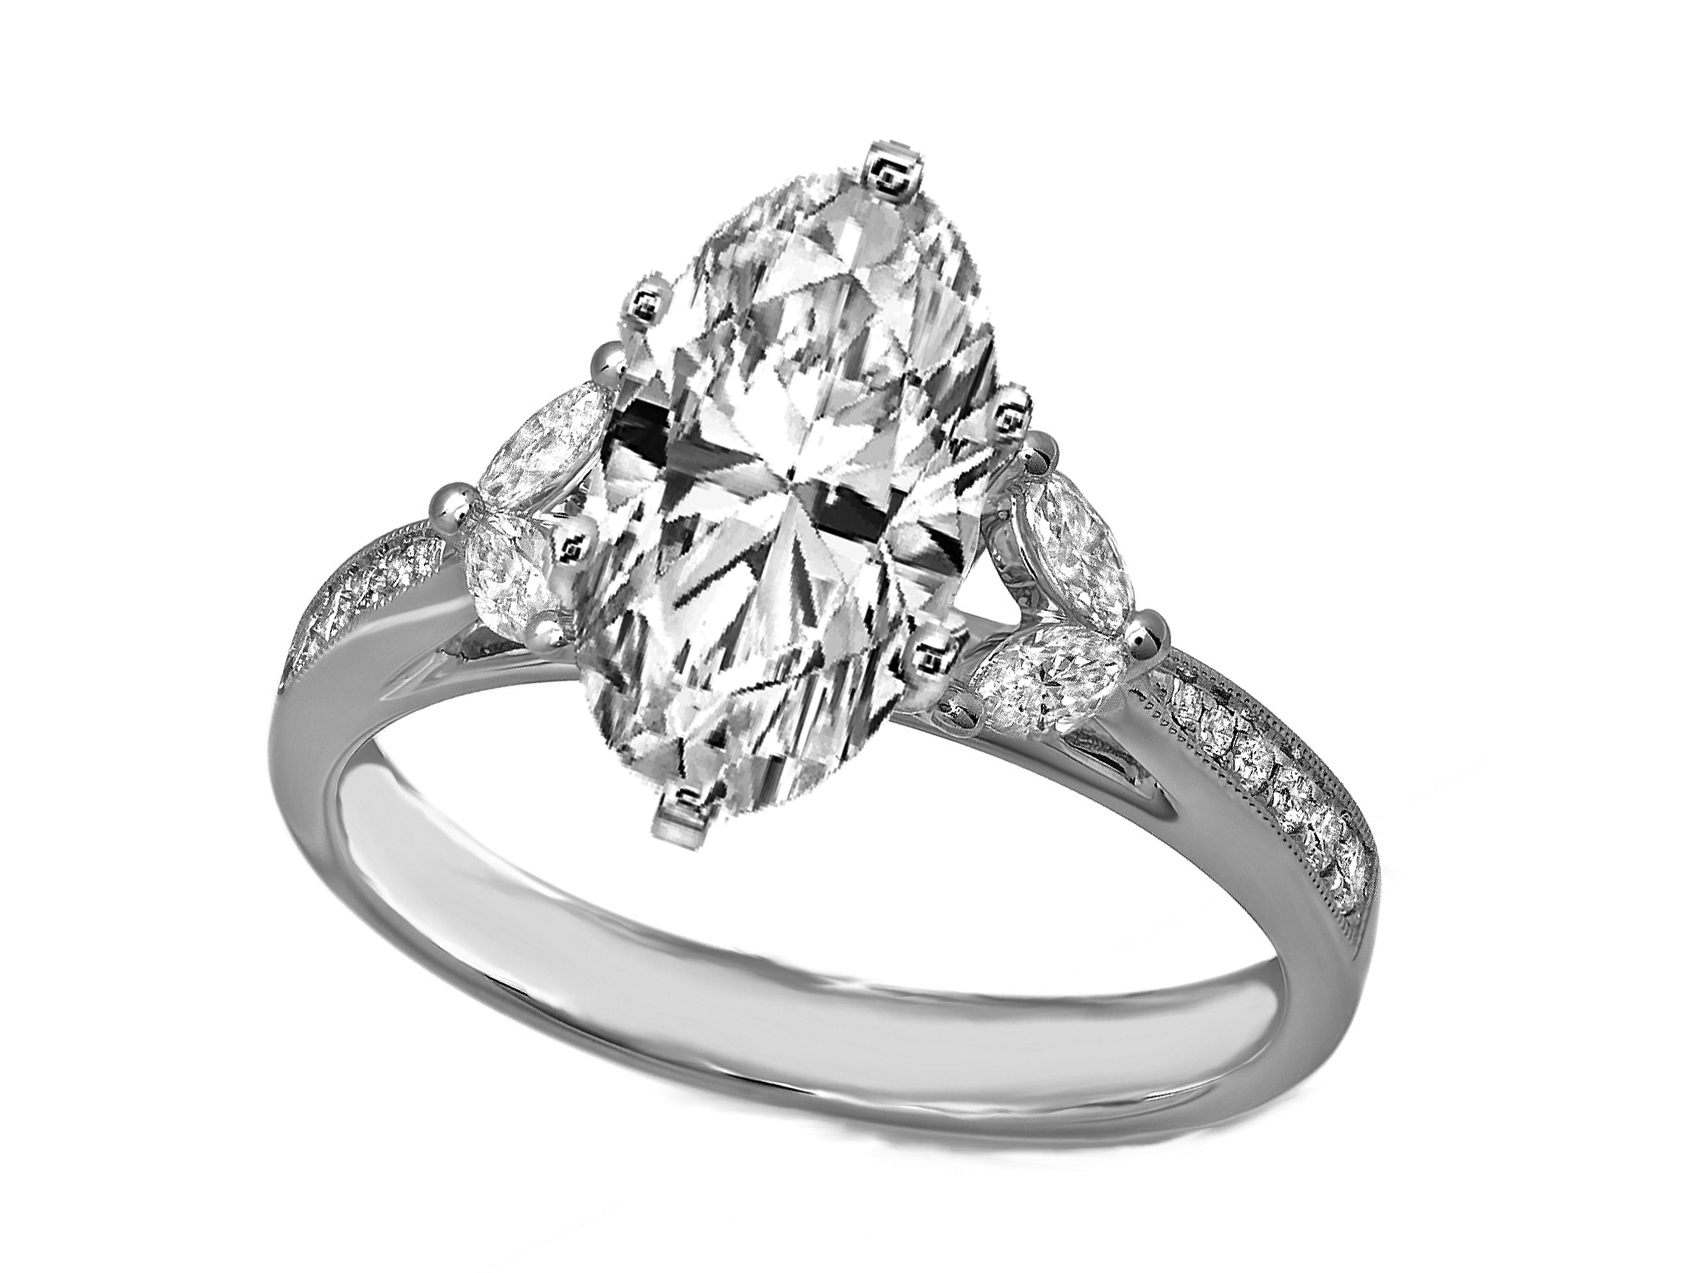 gold two cathedral in ring setting engagement rockher white prong row with diamond cushion cut rings double a